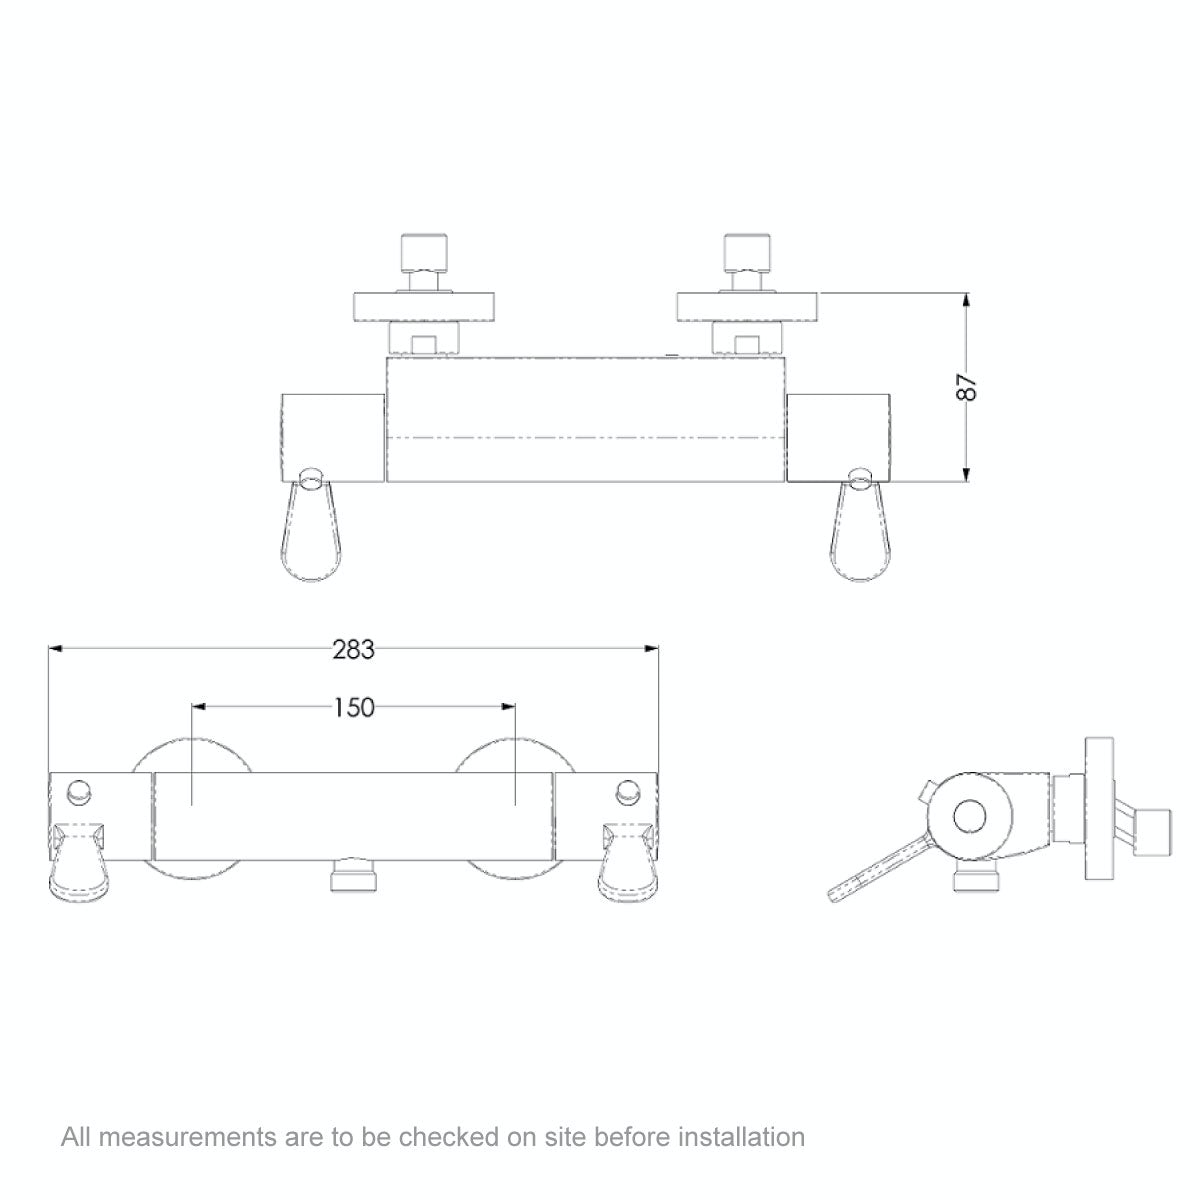 Dimensions for AKW Arka thermostatic mixer shower valve